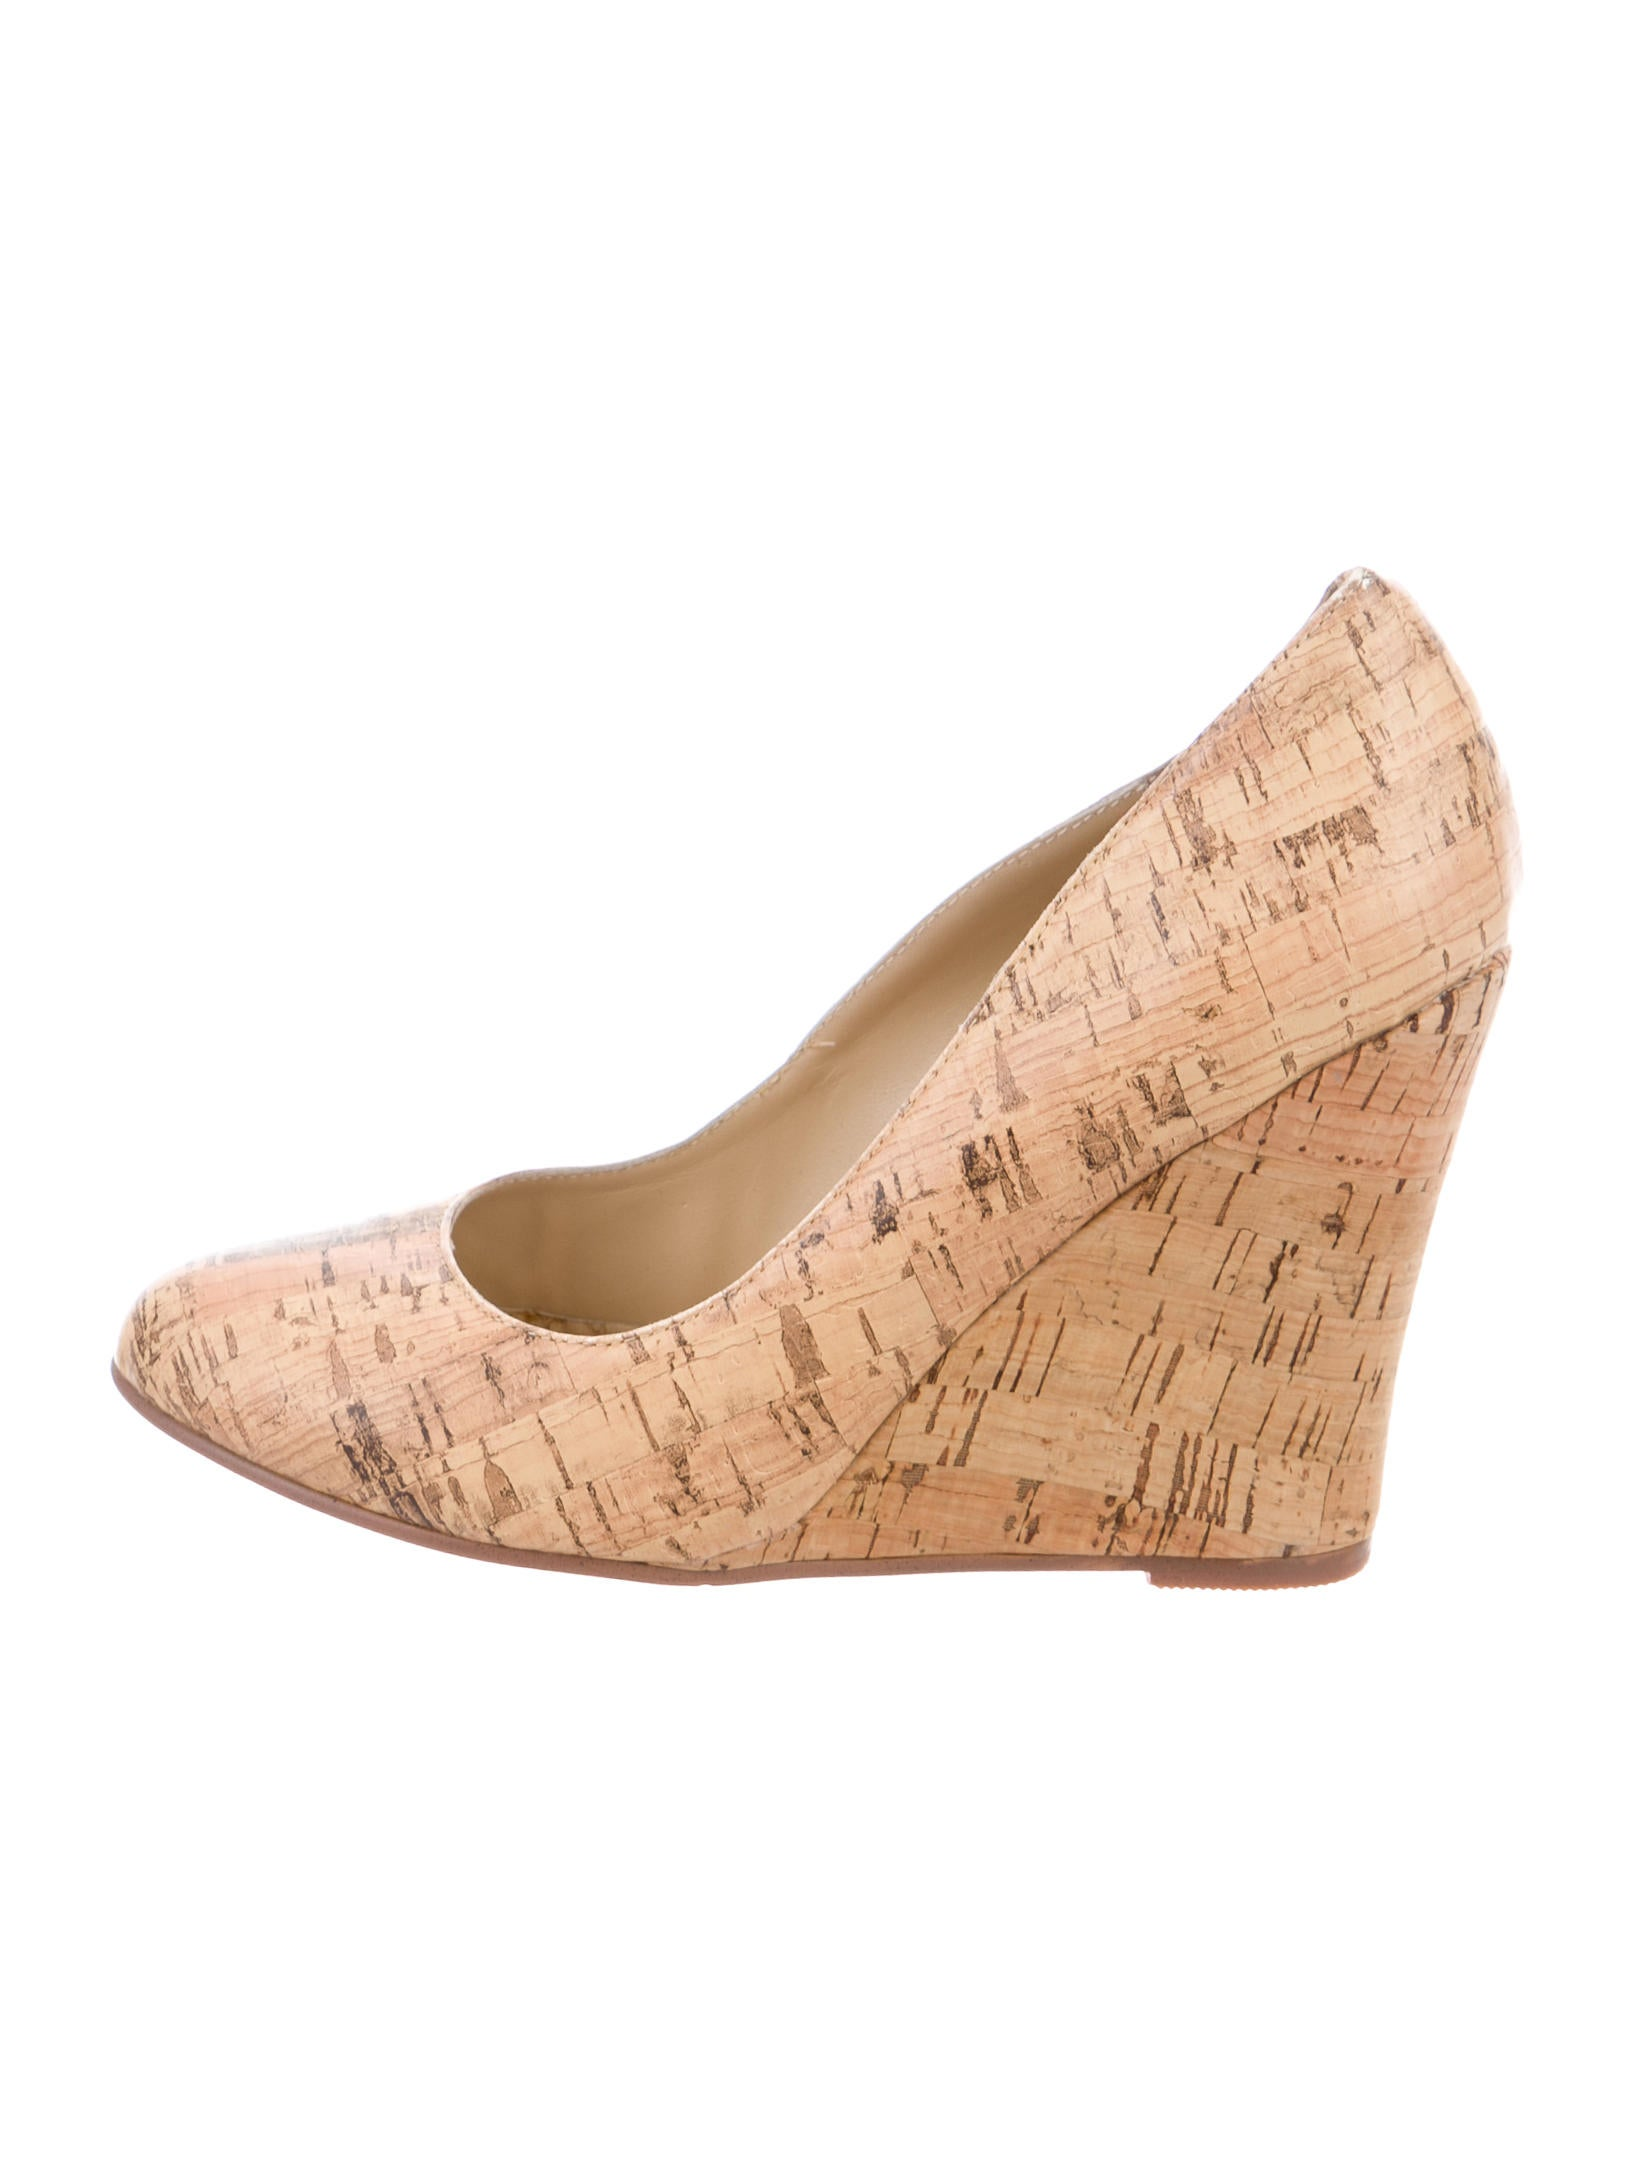 Christian Louboutin Cork Round-Toe Wedges discount best sale discount excellent ApW8Sgb0c